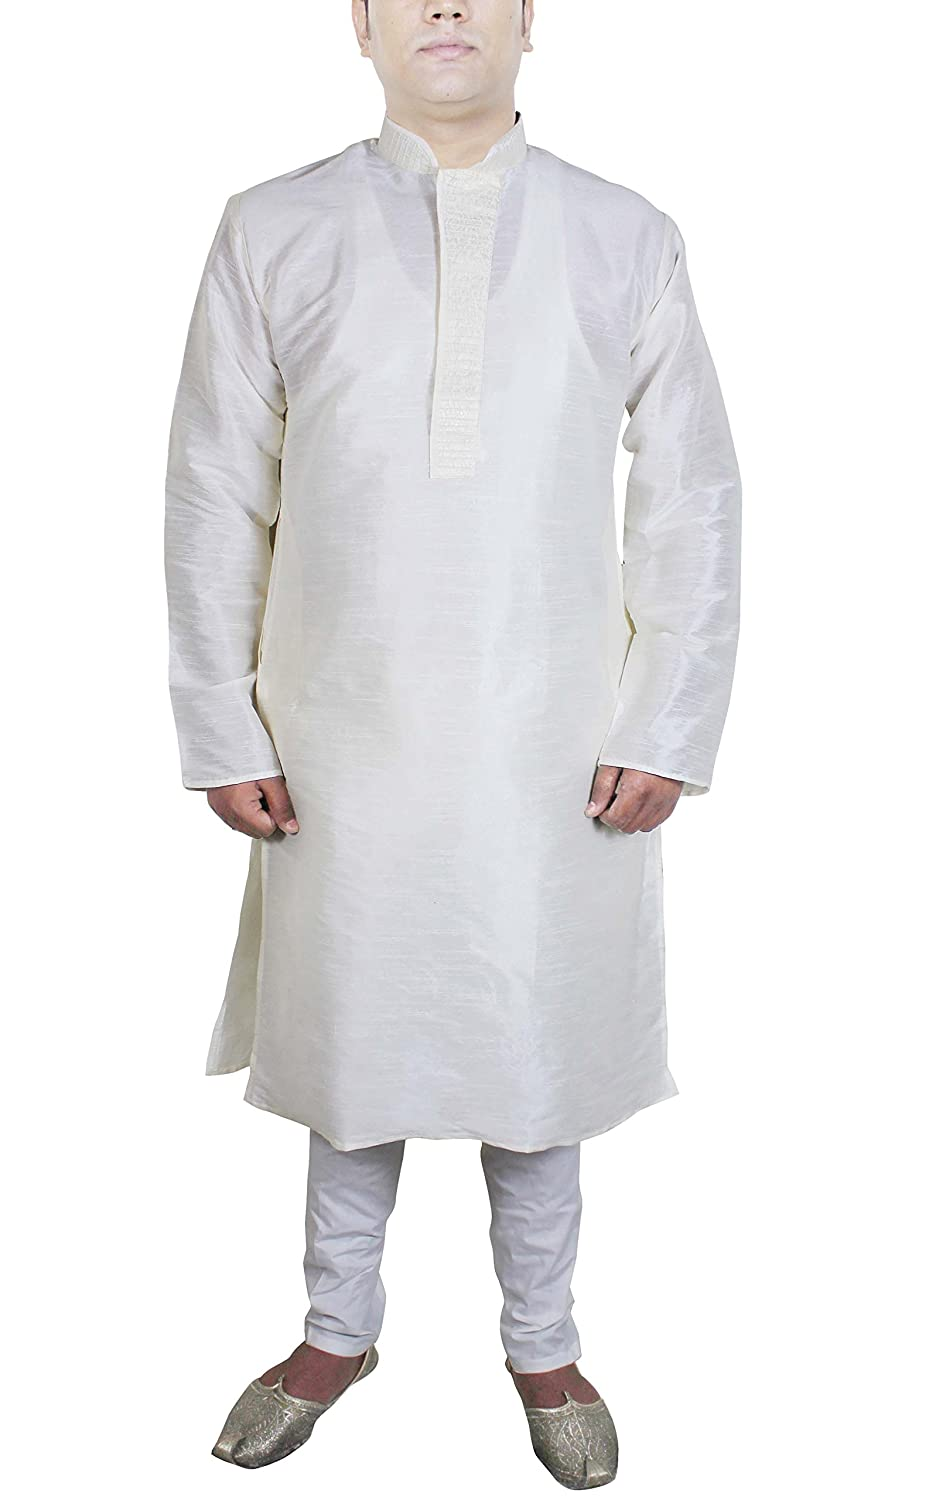 Kurta Pajama,White,L - Chest : 42 inches